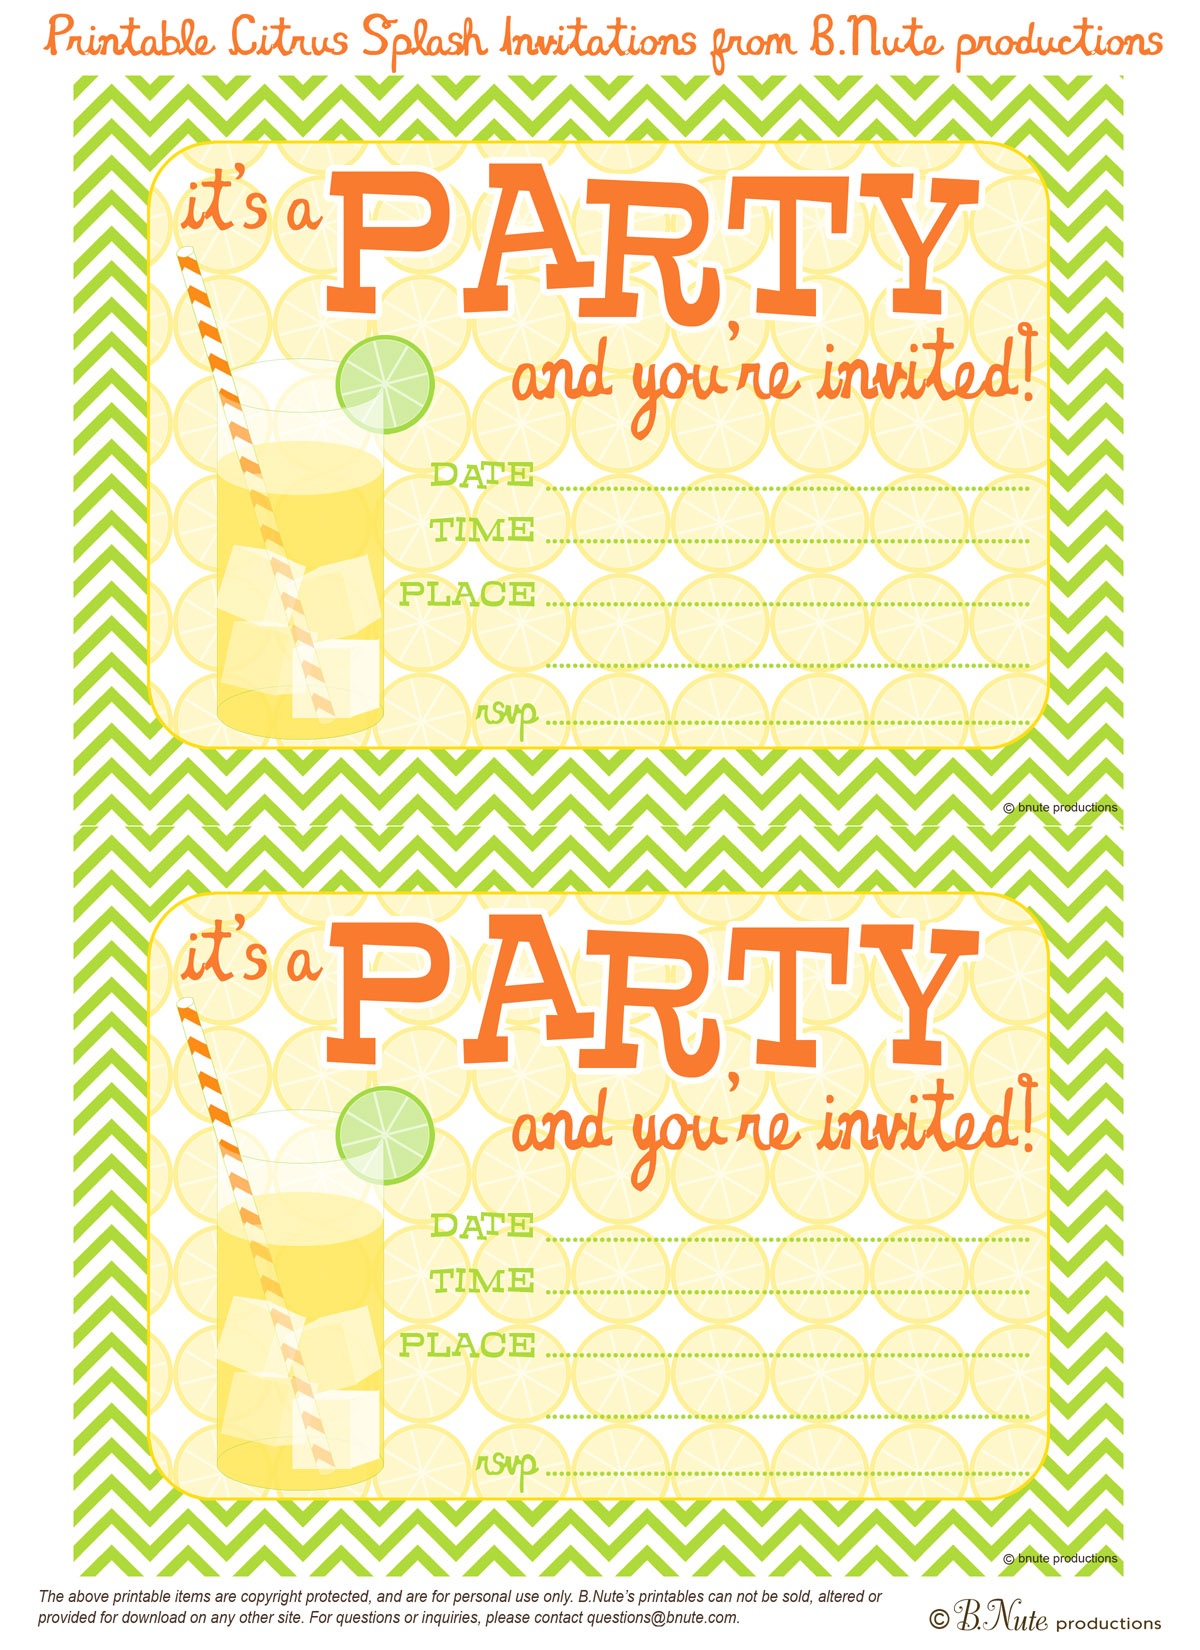 bnute productions: Free Printable Citrus Splash Invitations